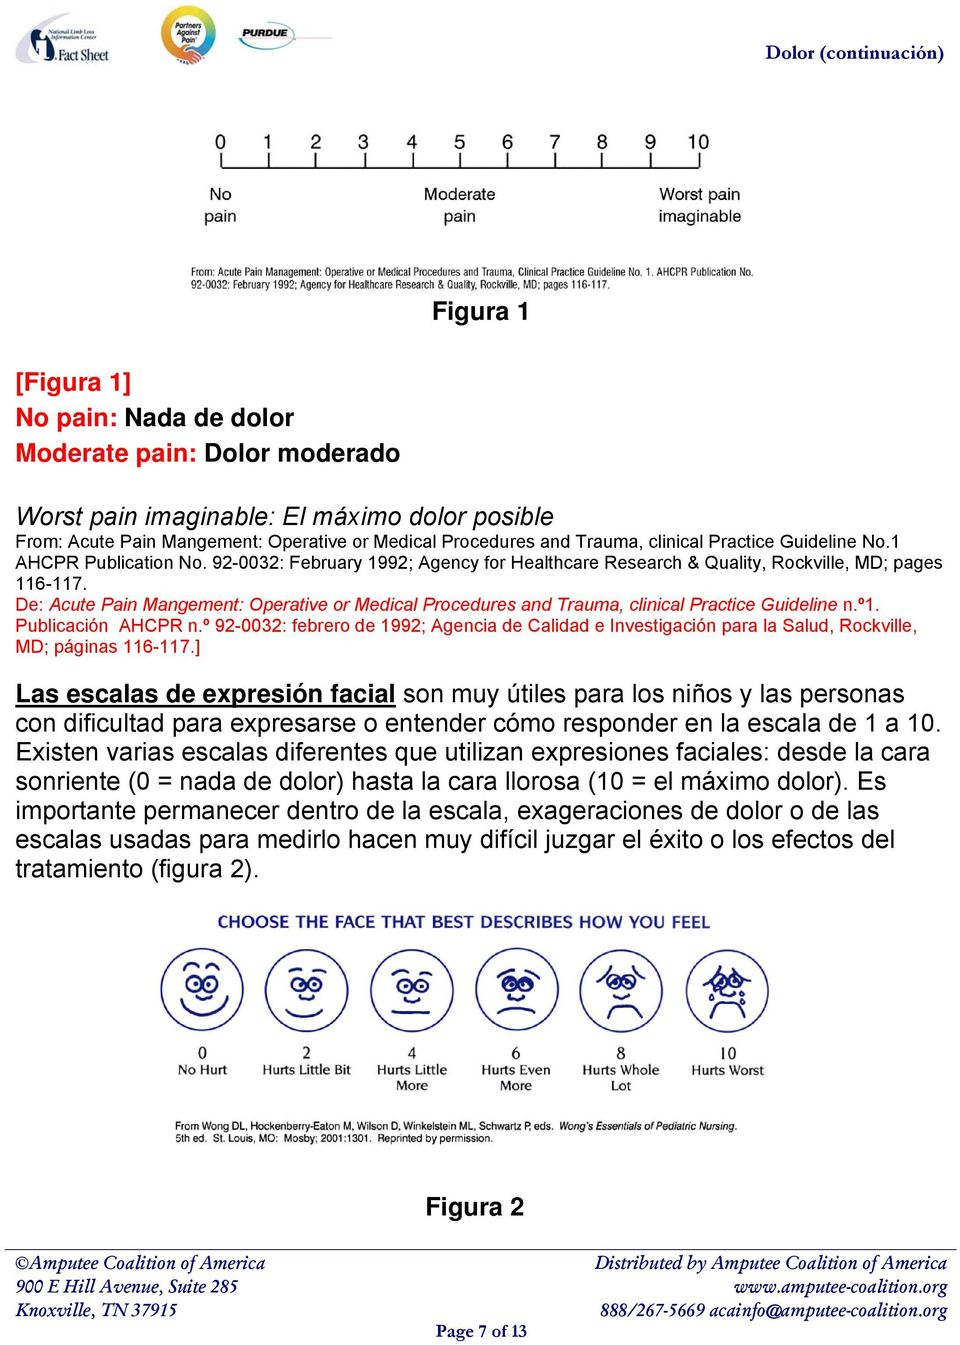 De: Acute Pain Mangement: Operative or Medical Procedures and Trauma, clinical Practice Guideline n.º1. Publicación AHCPR n.